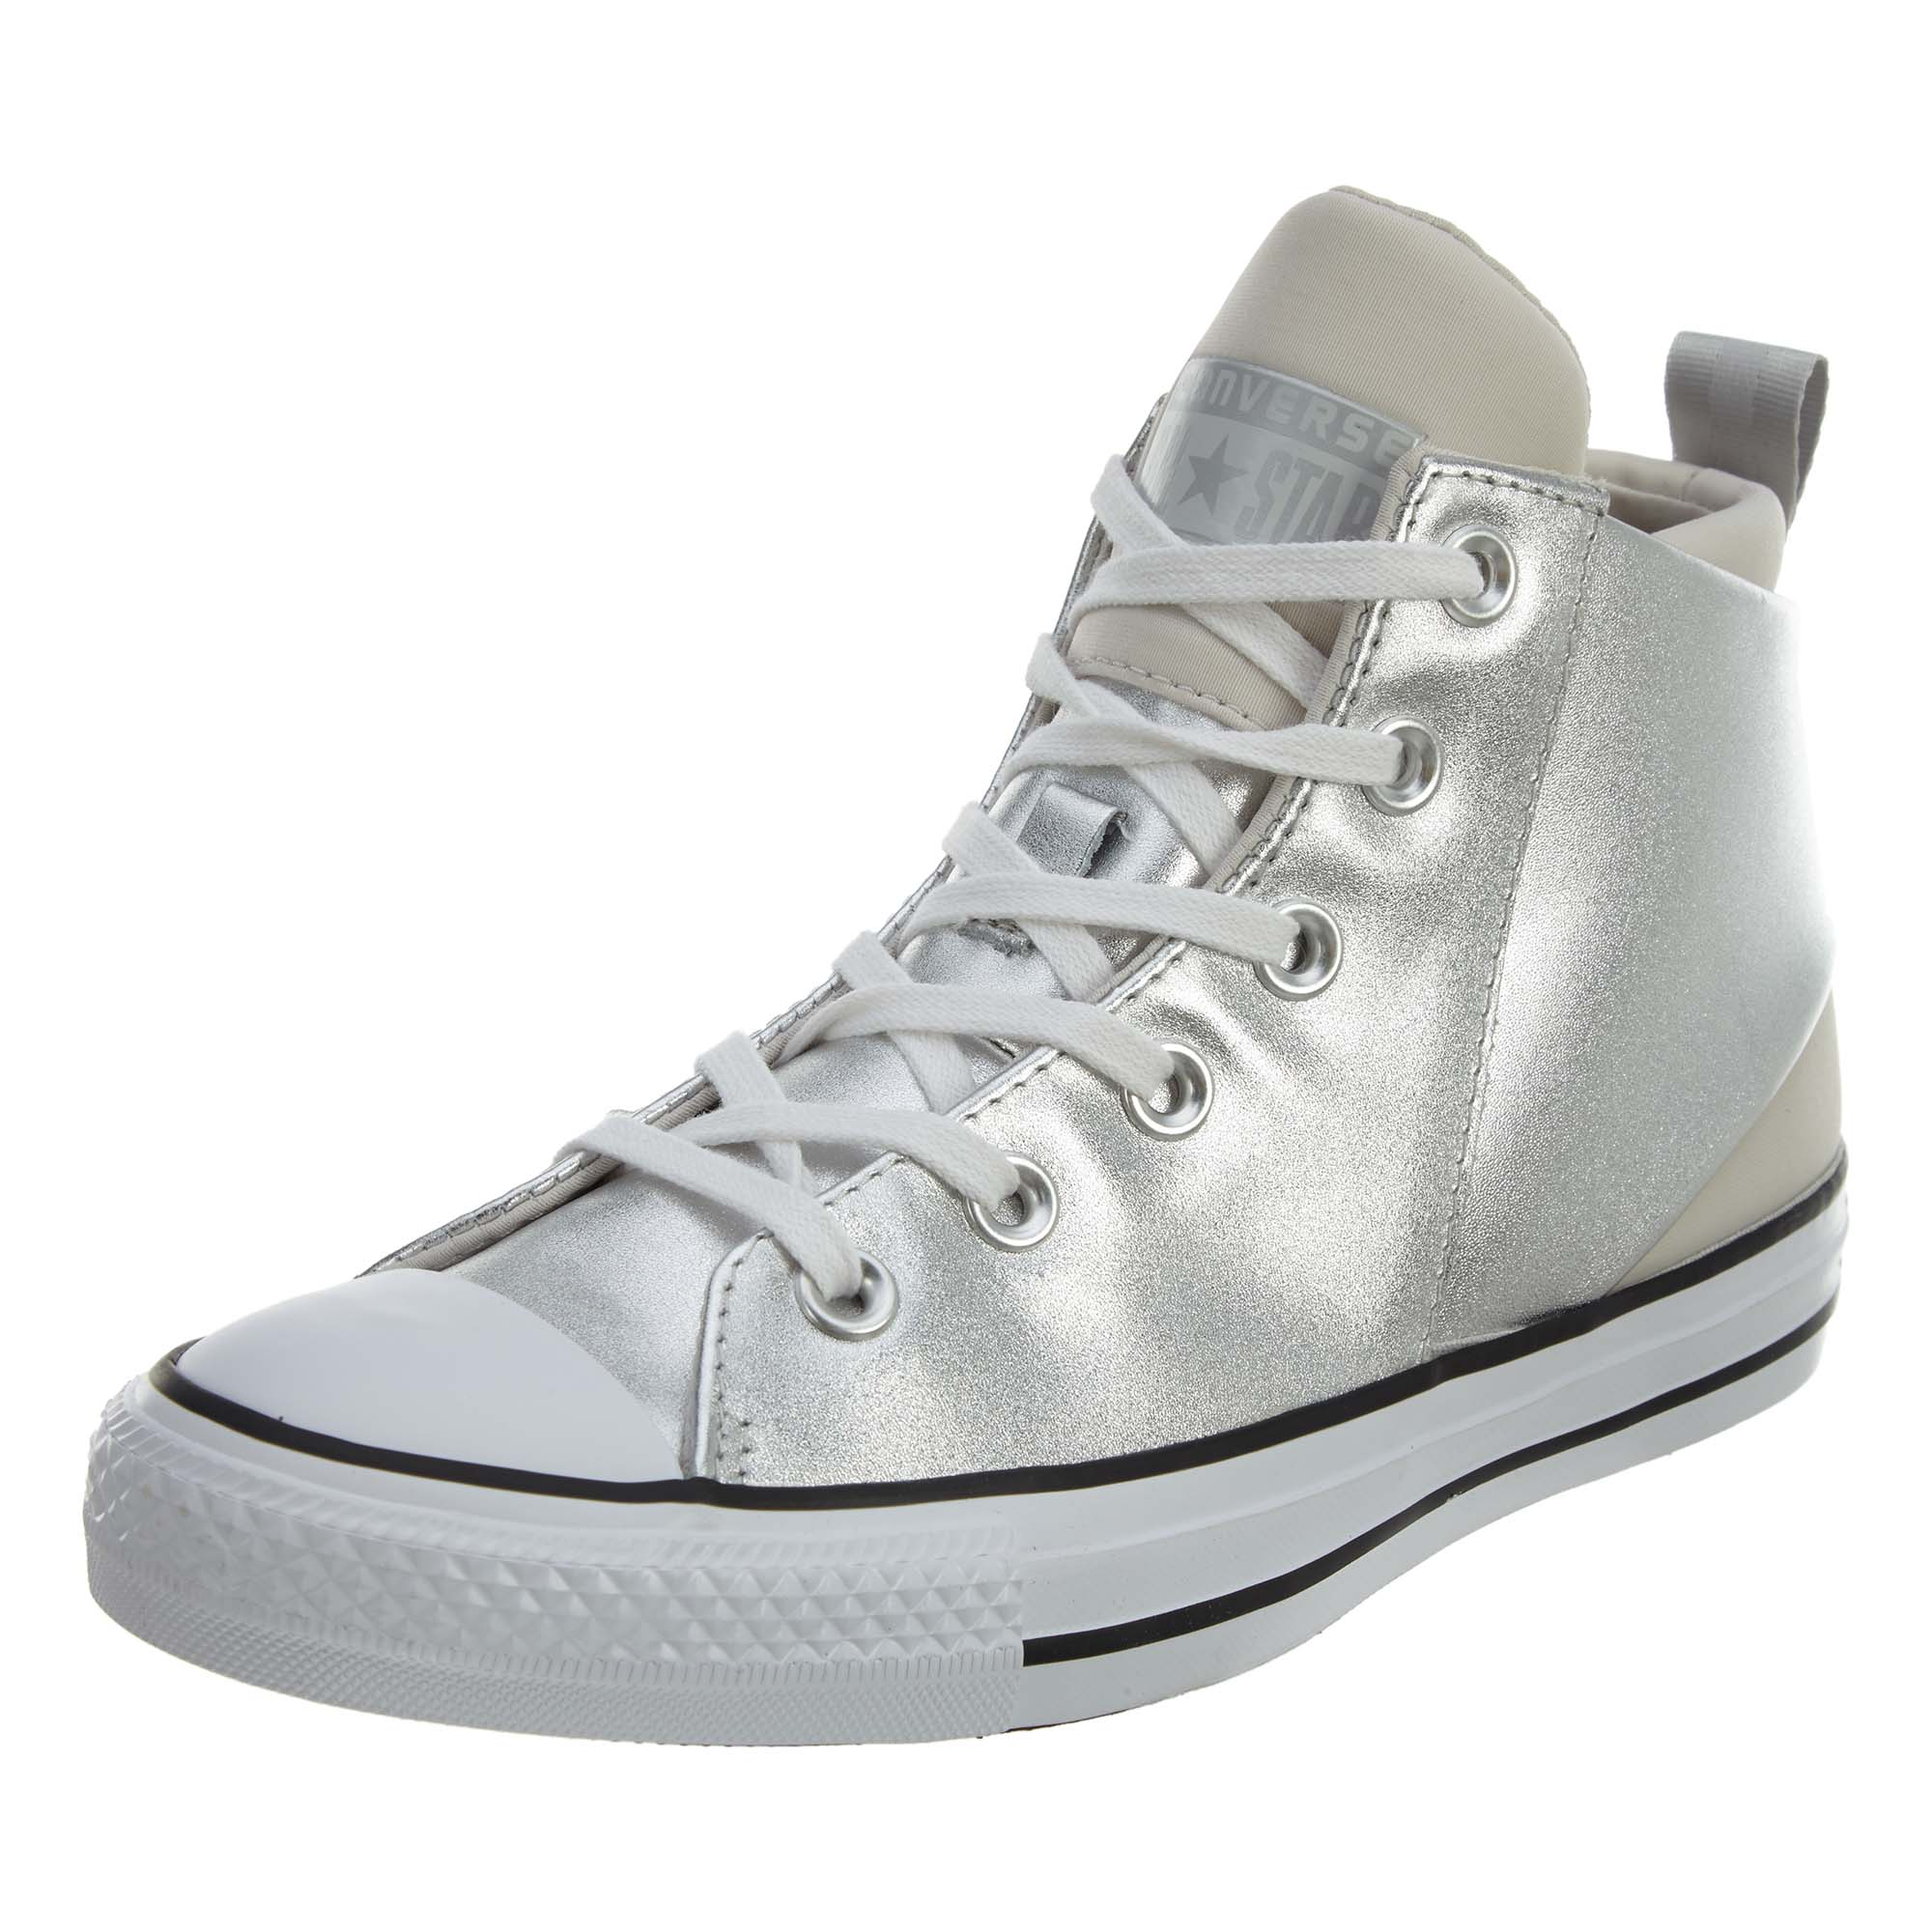 Converse Chuck Taylor Women's All Star Sloane Mid Women's Taylor Mouse/Black/White 555834C 90a723